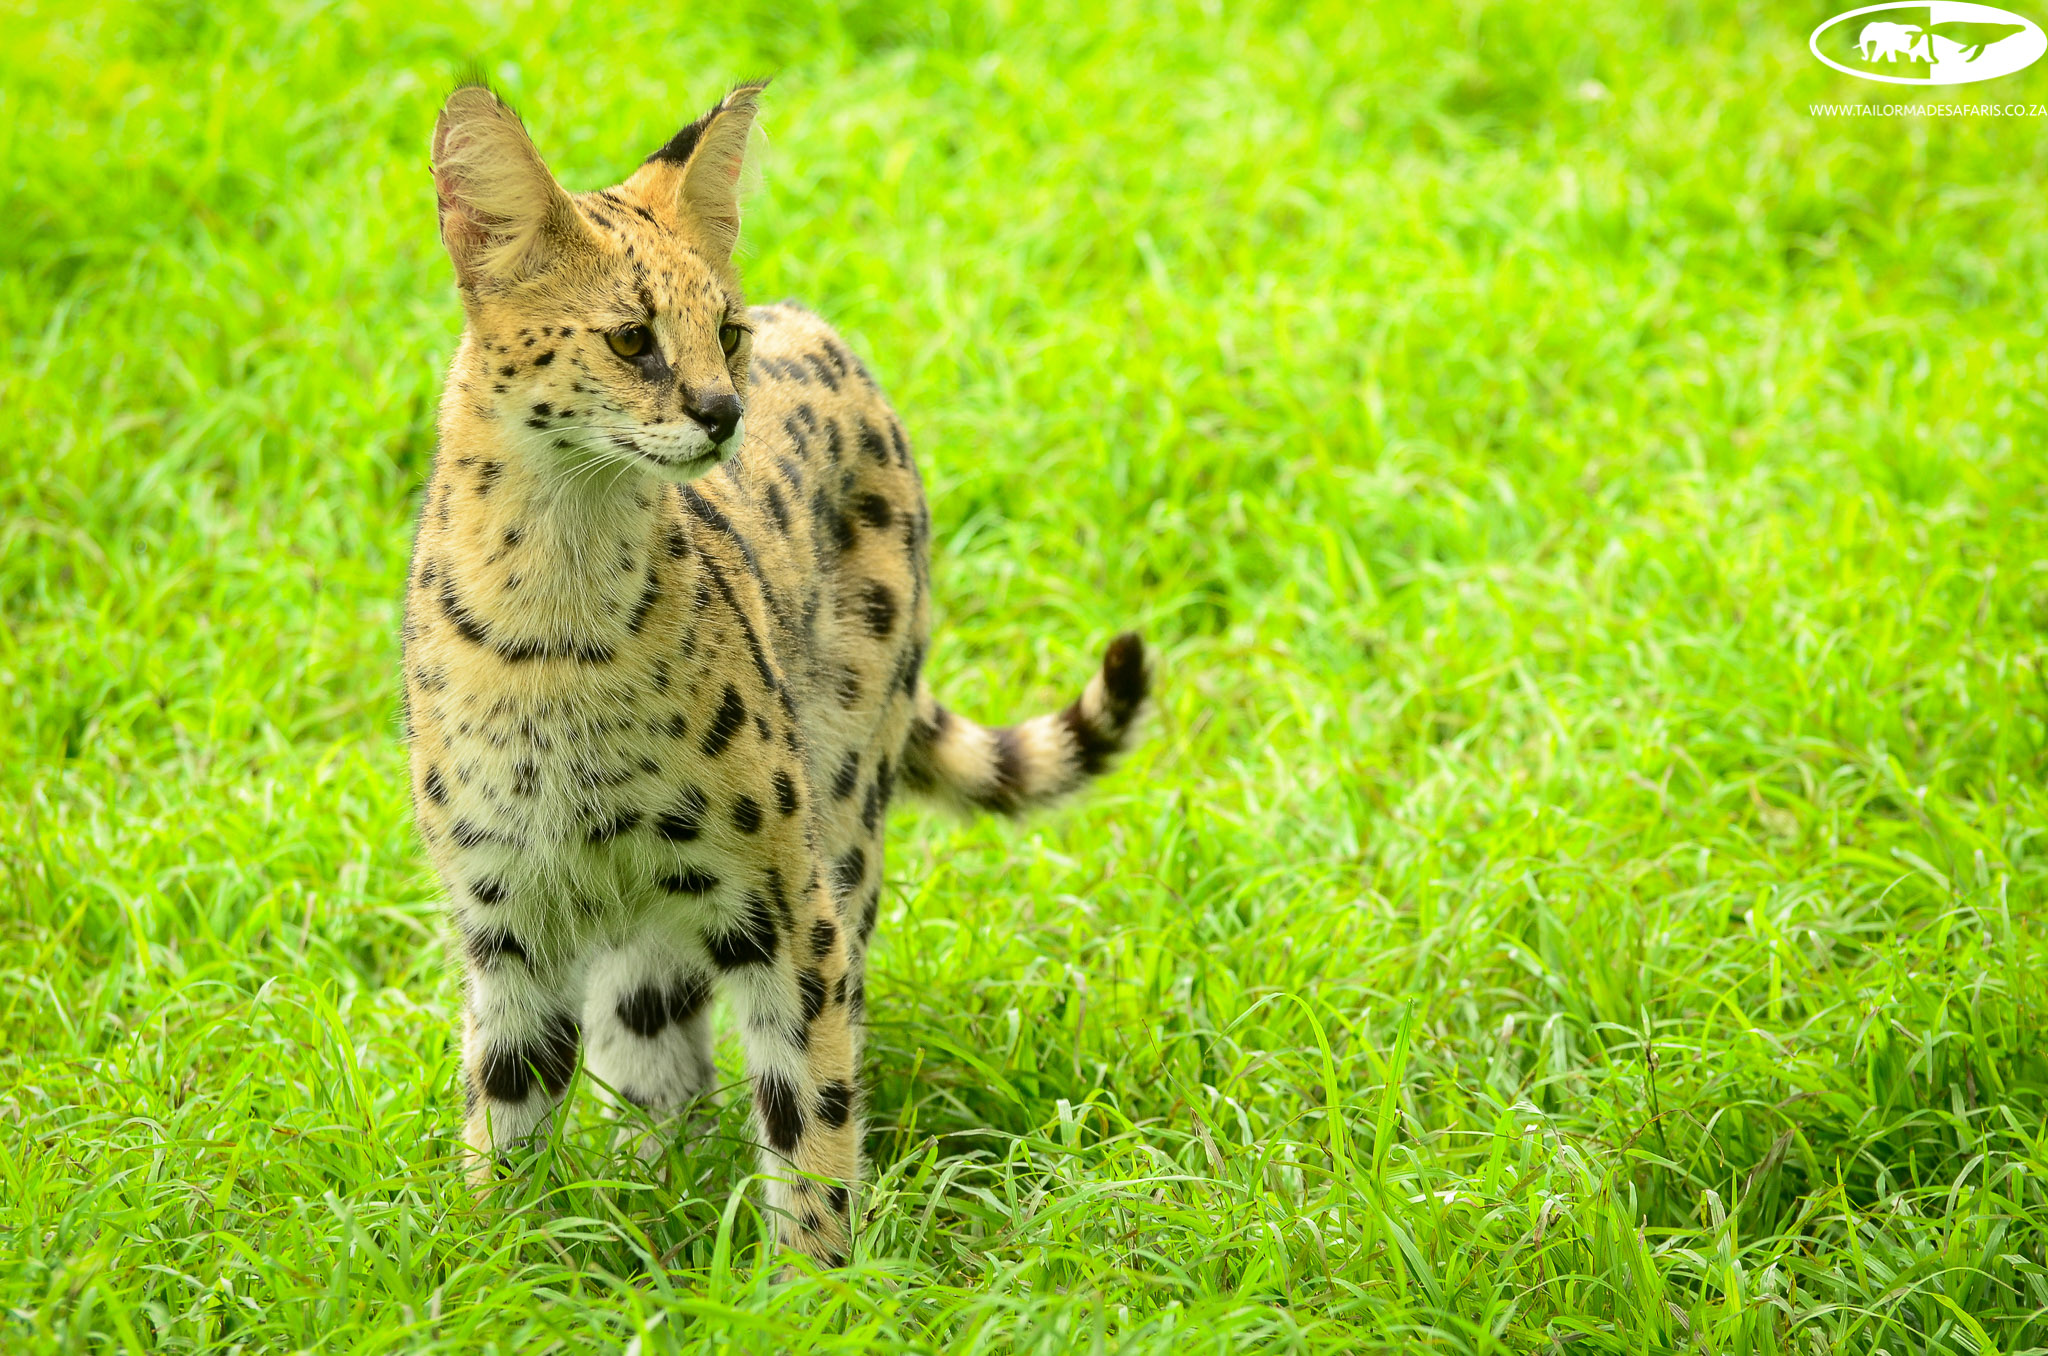 A serval spotted at Emdoneni Lodge in KwaZulu-Natal. Did you know that compared to other cats, servals have the longest legs relative to their body size? Via @tms_za https://t.co/NC5XLSwuFL